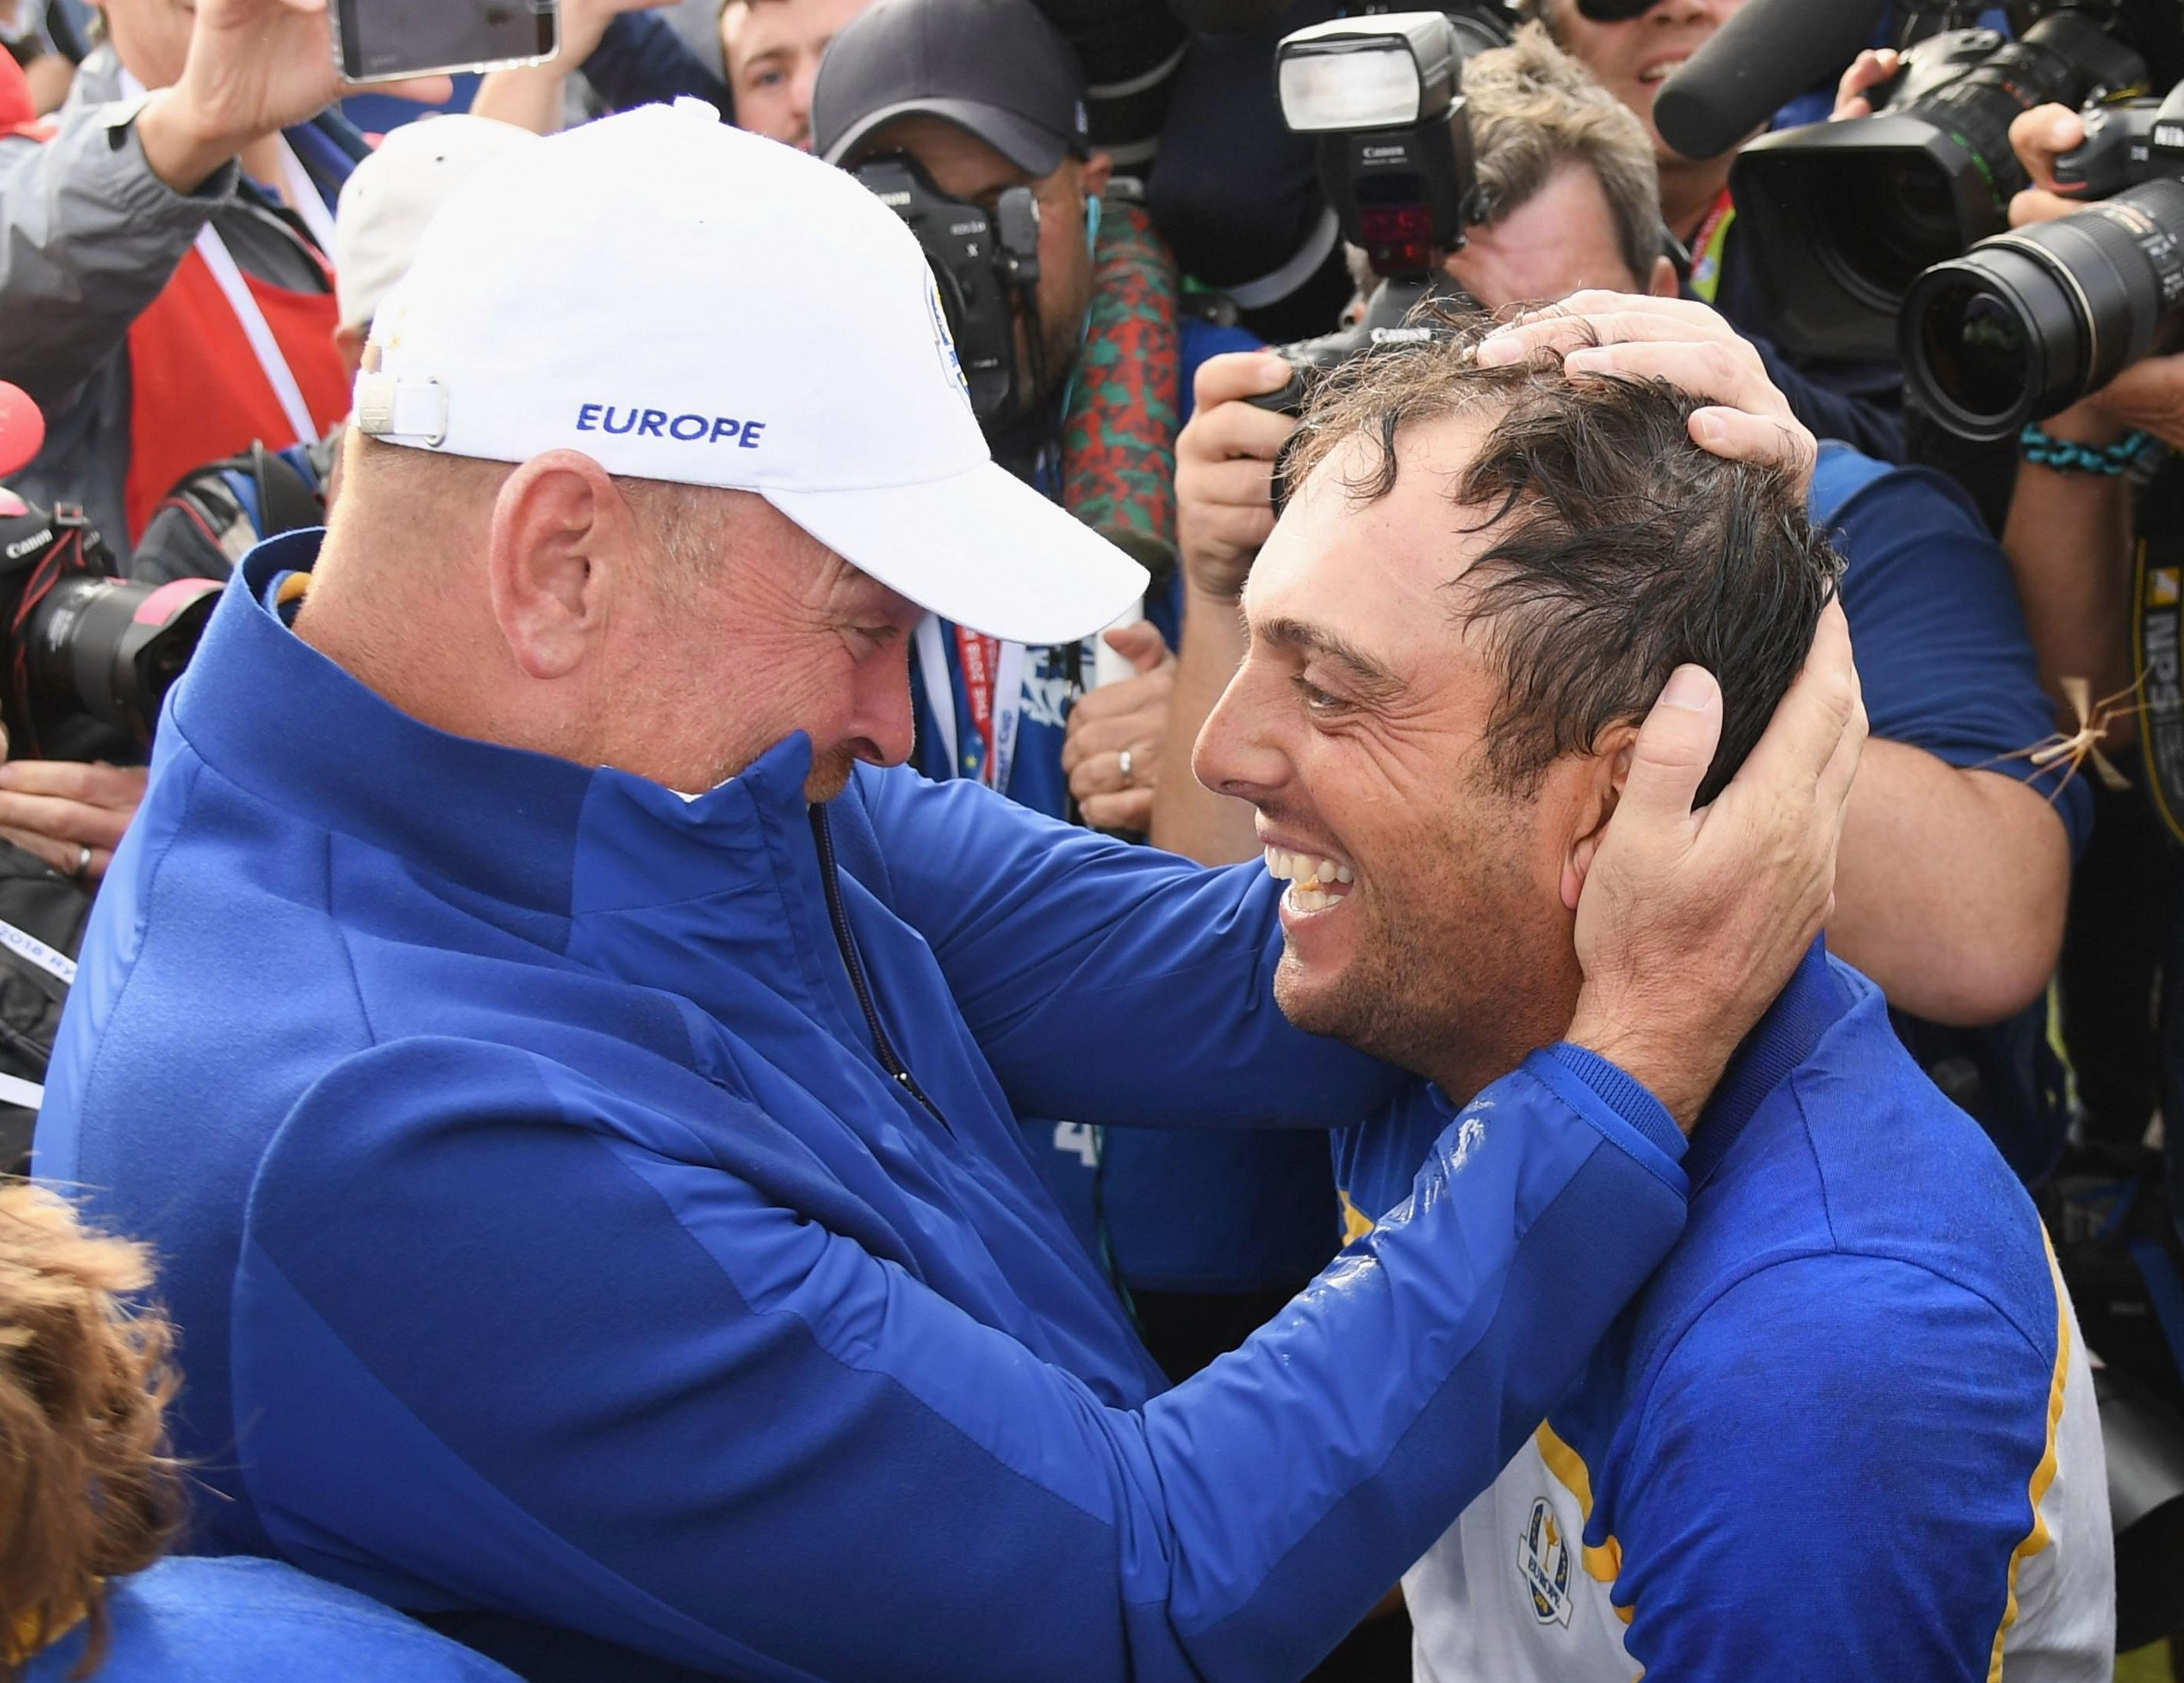 Francesco Molinari celebrates after beating Phil Mickelson to seal victory